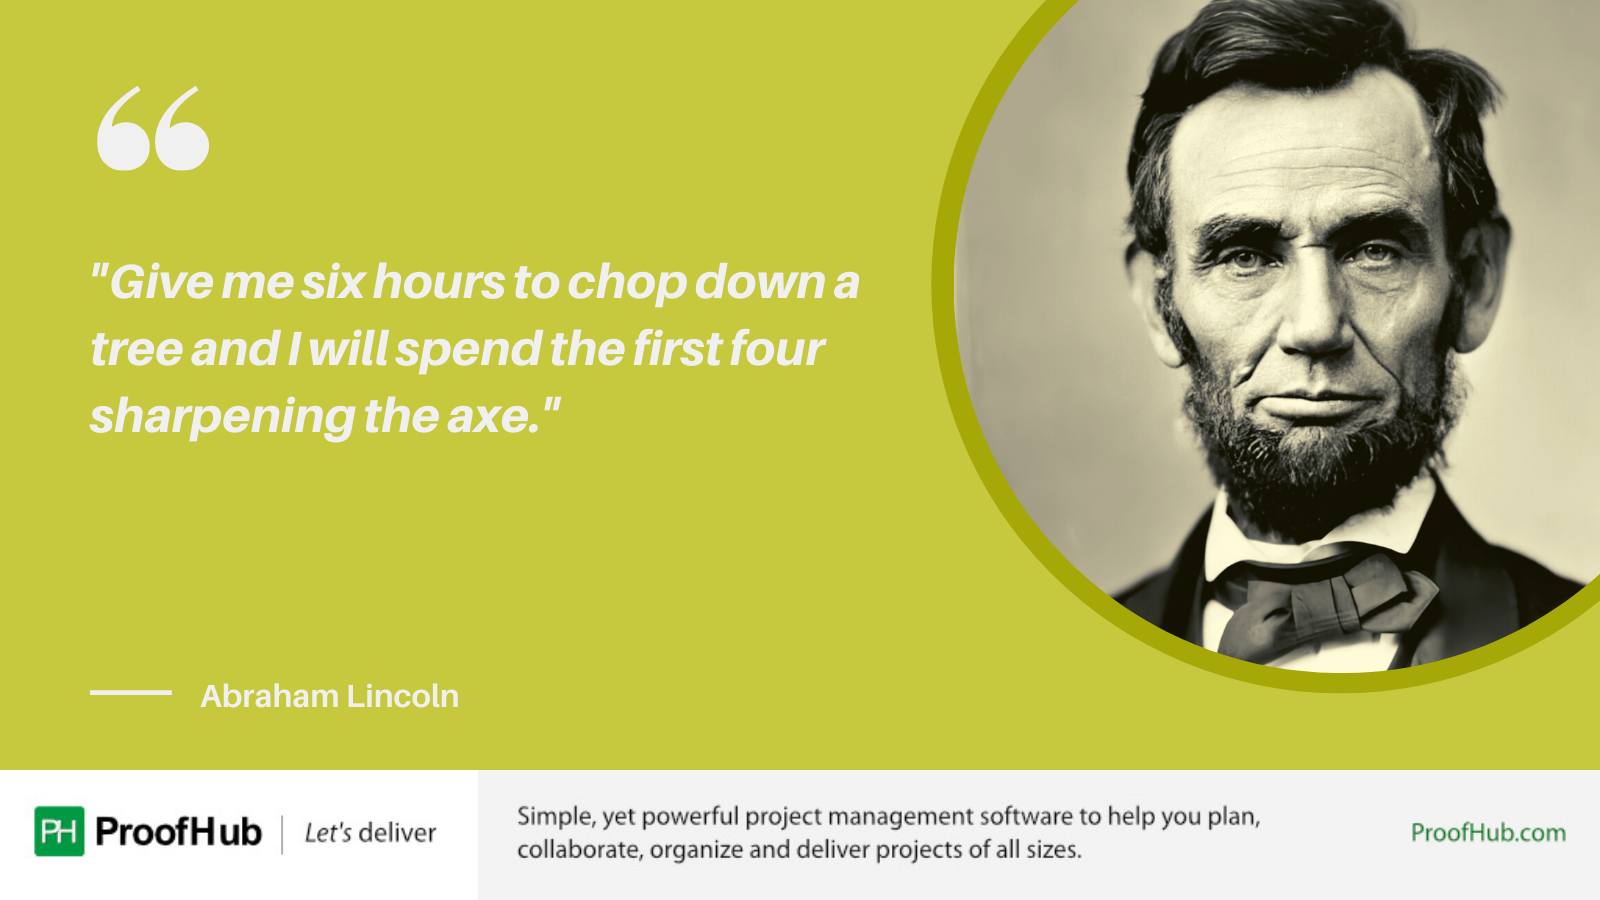 Give me six hours to chop down a tree and I will spend the first four sharpening the axe Quote by Abraham Lincoln